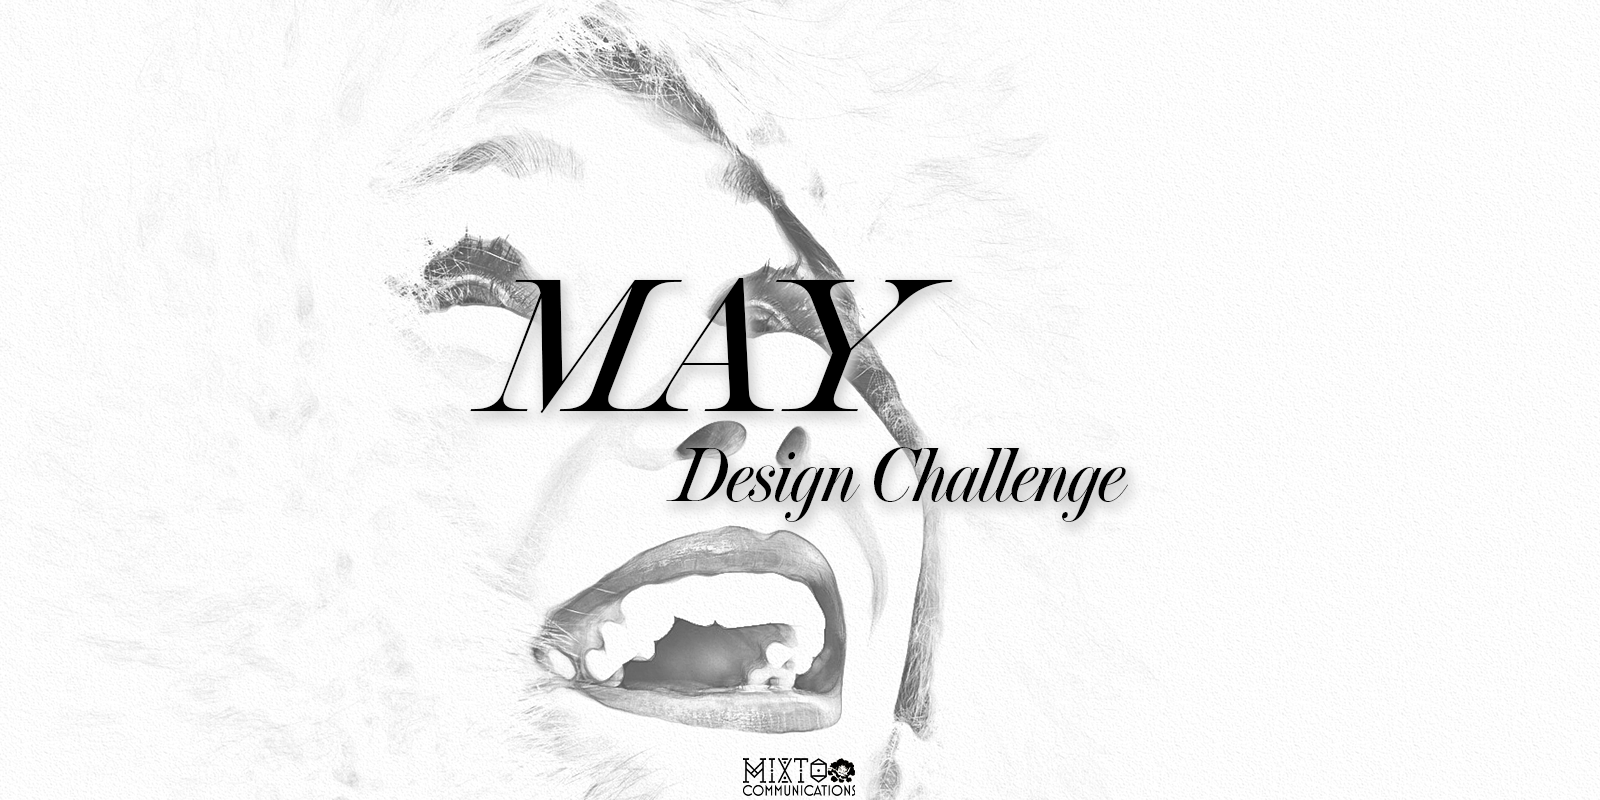 Design challenge day 11 pencil sketch drawing effect in photoshop